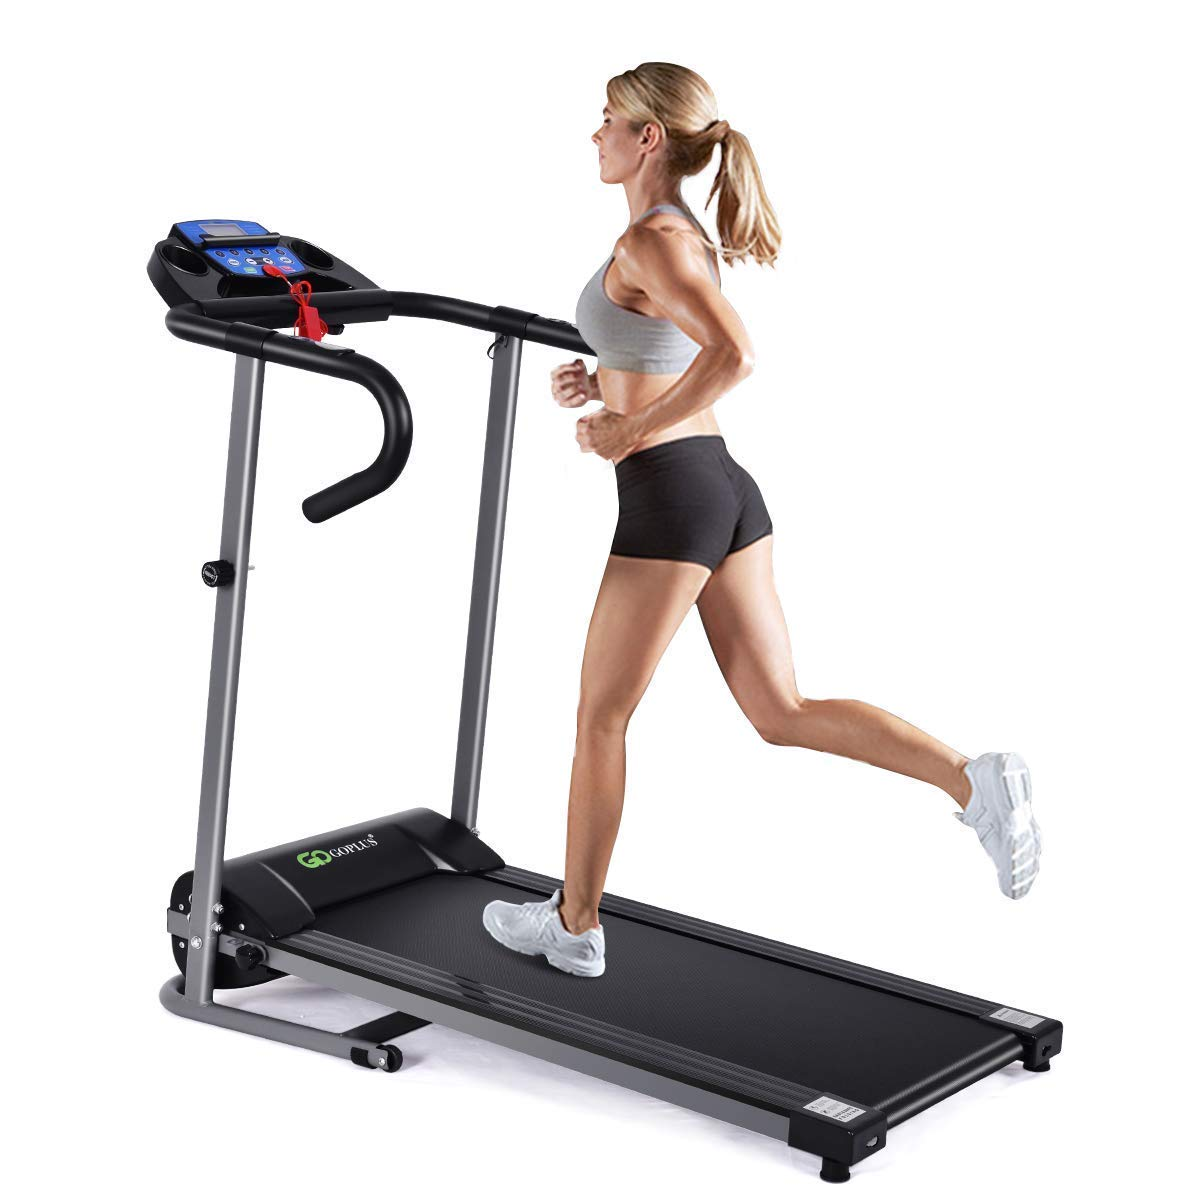 Goplus 1100W Electric Folding Treadmill with LCD Display and Pad Holder, Compact Running Jogging Machine for Home